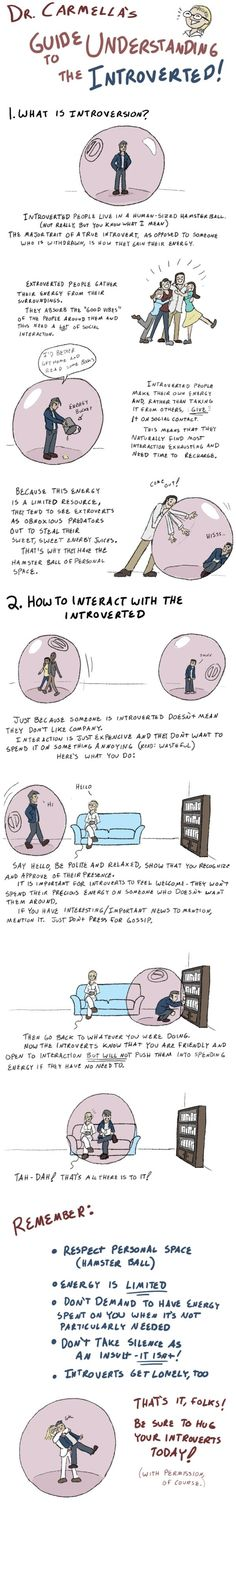 How to care for an introvert. TRUTH.